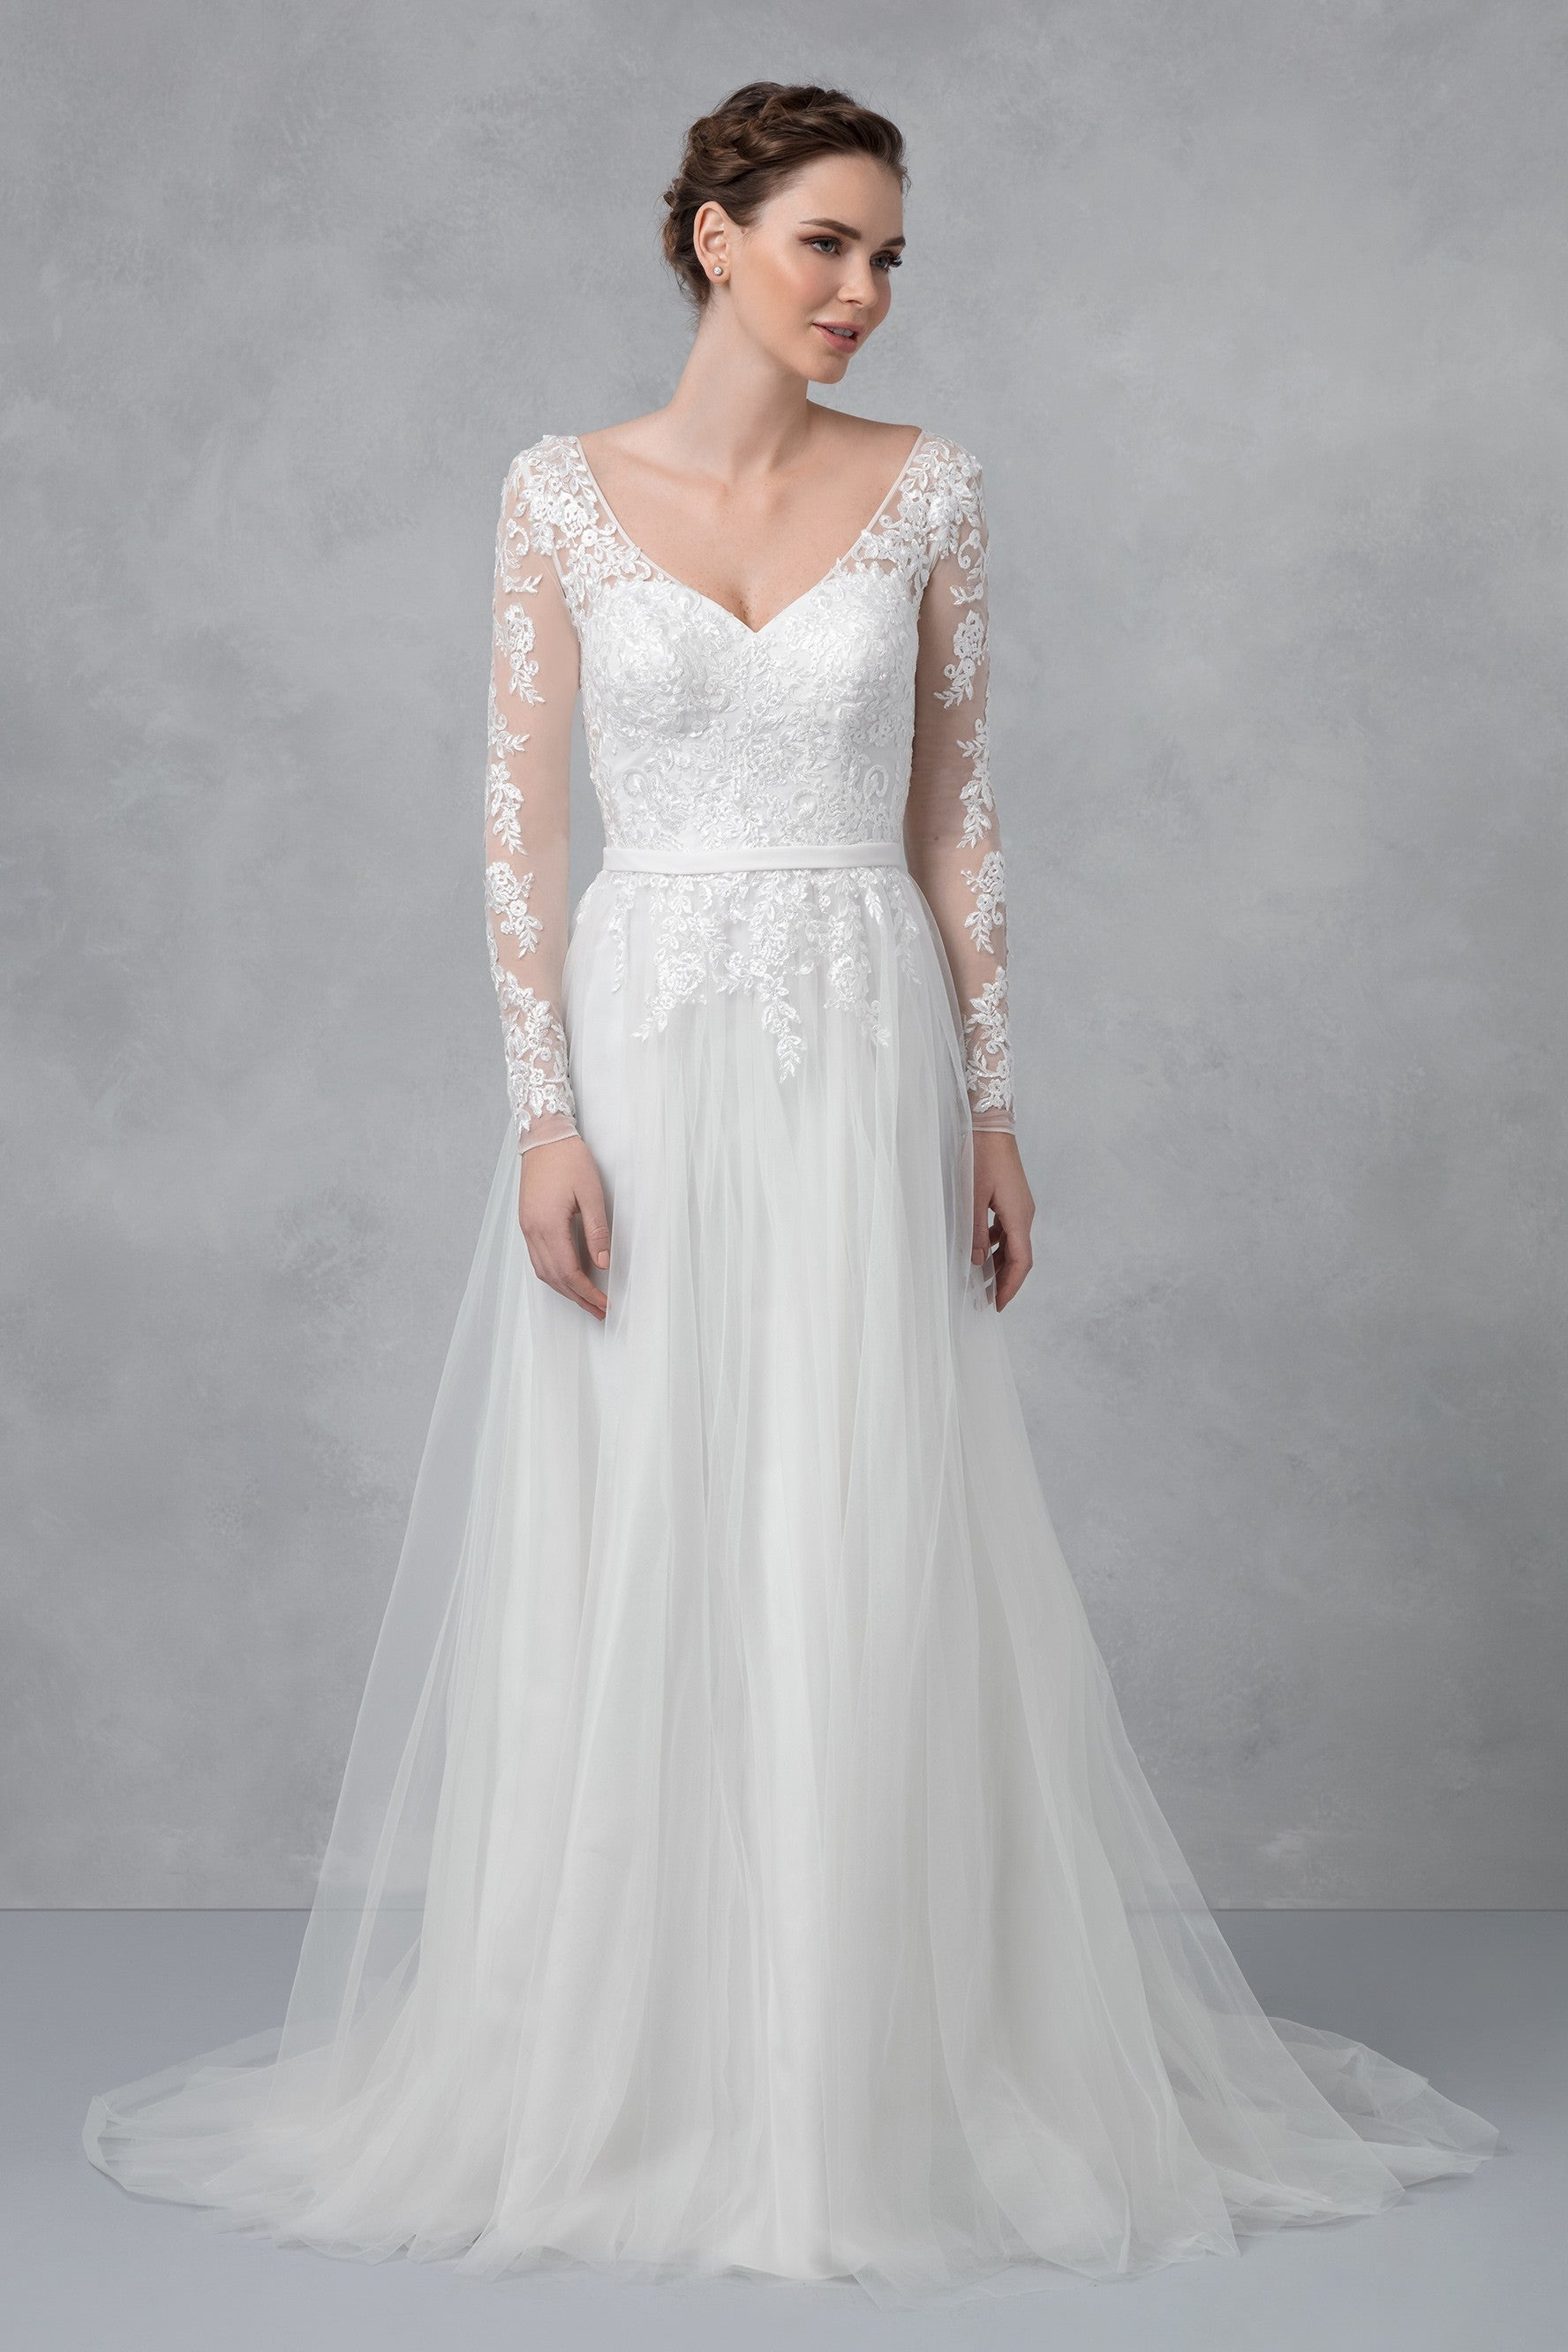 Long Sleeve Wedding Dress With Low Back-WG3831